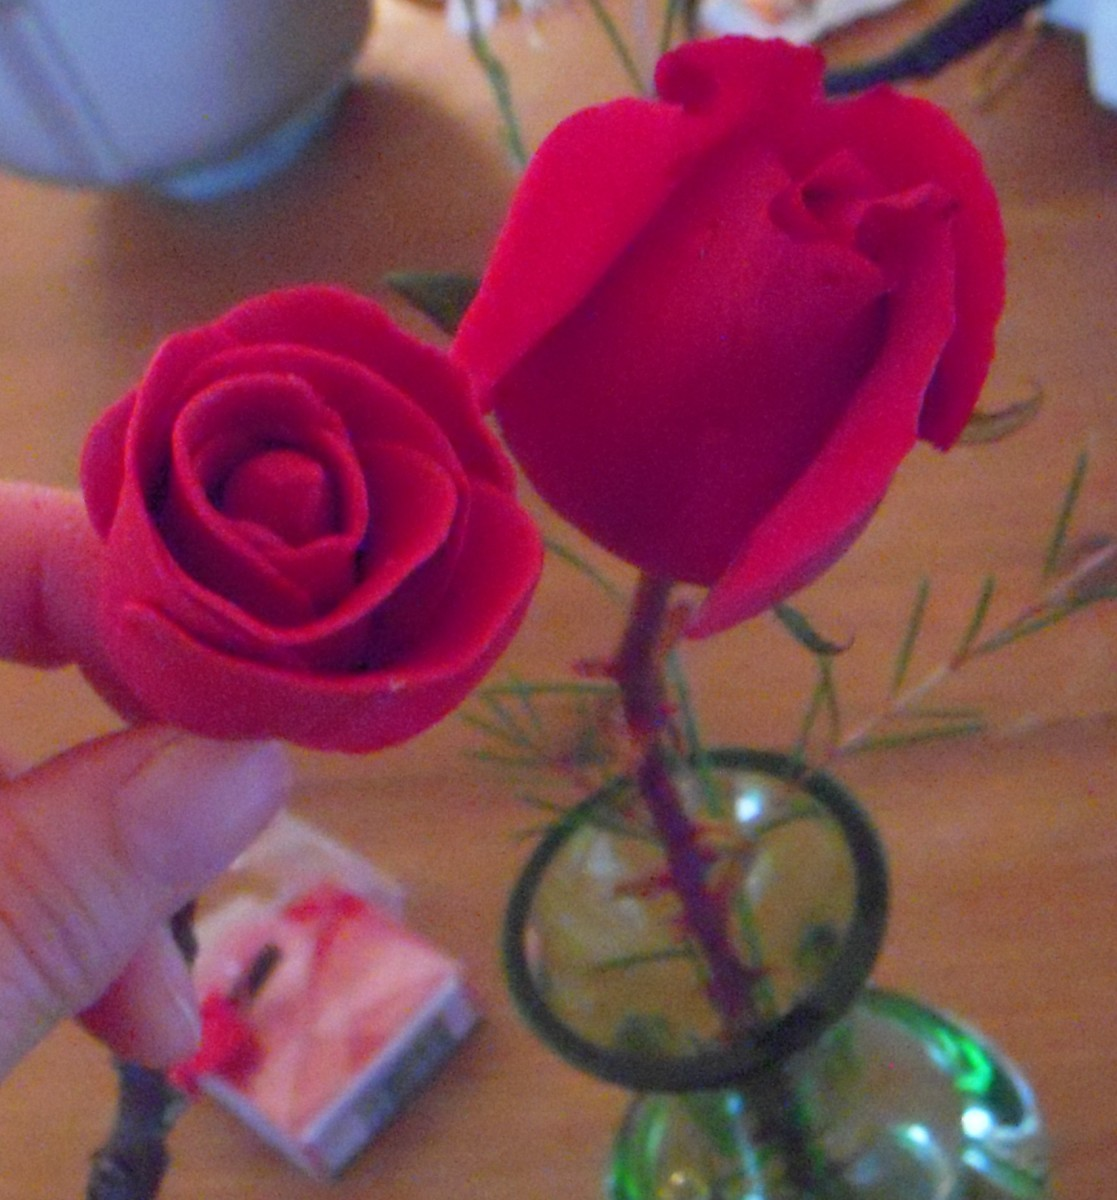 Sculpey clay rose (left) next to the real thing.